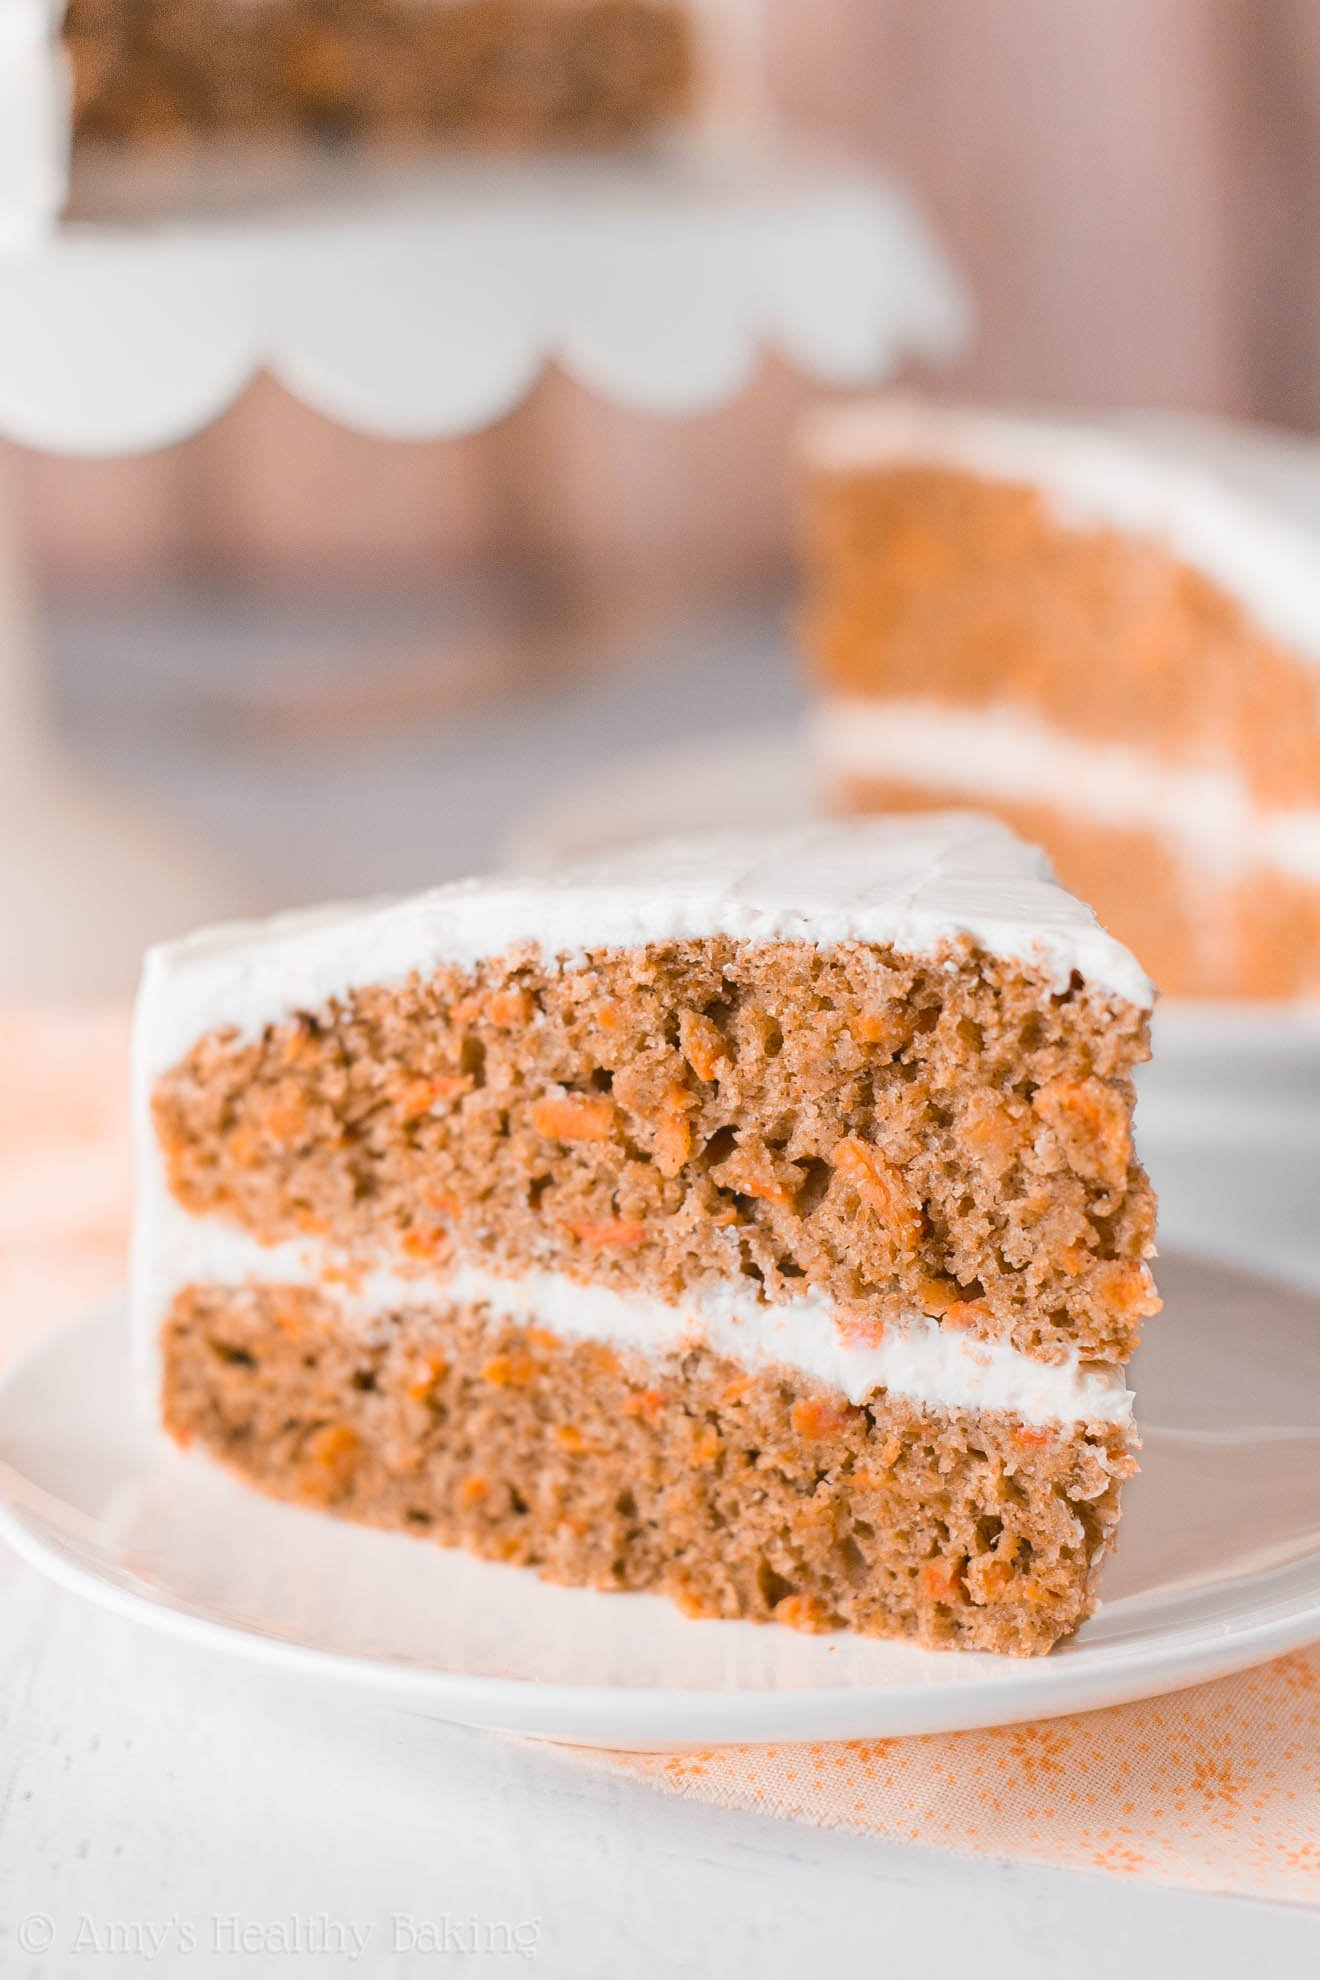 Where To Buy Carrot Cake Near Me